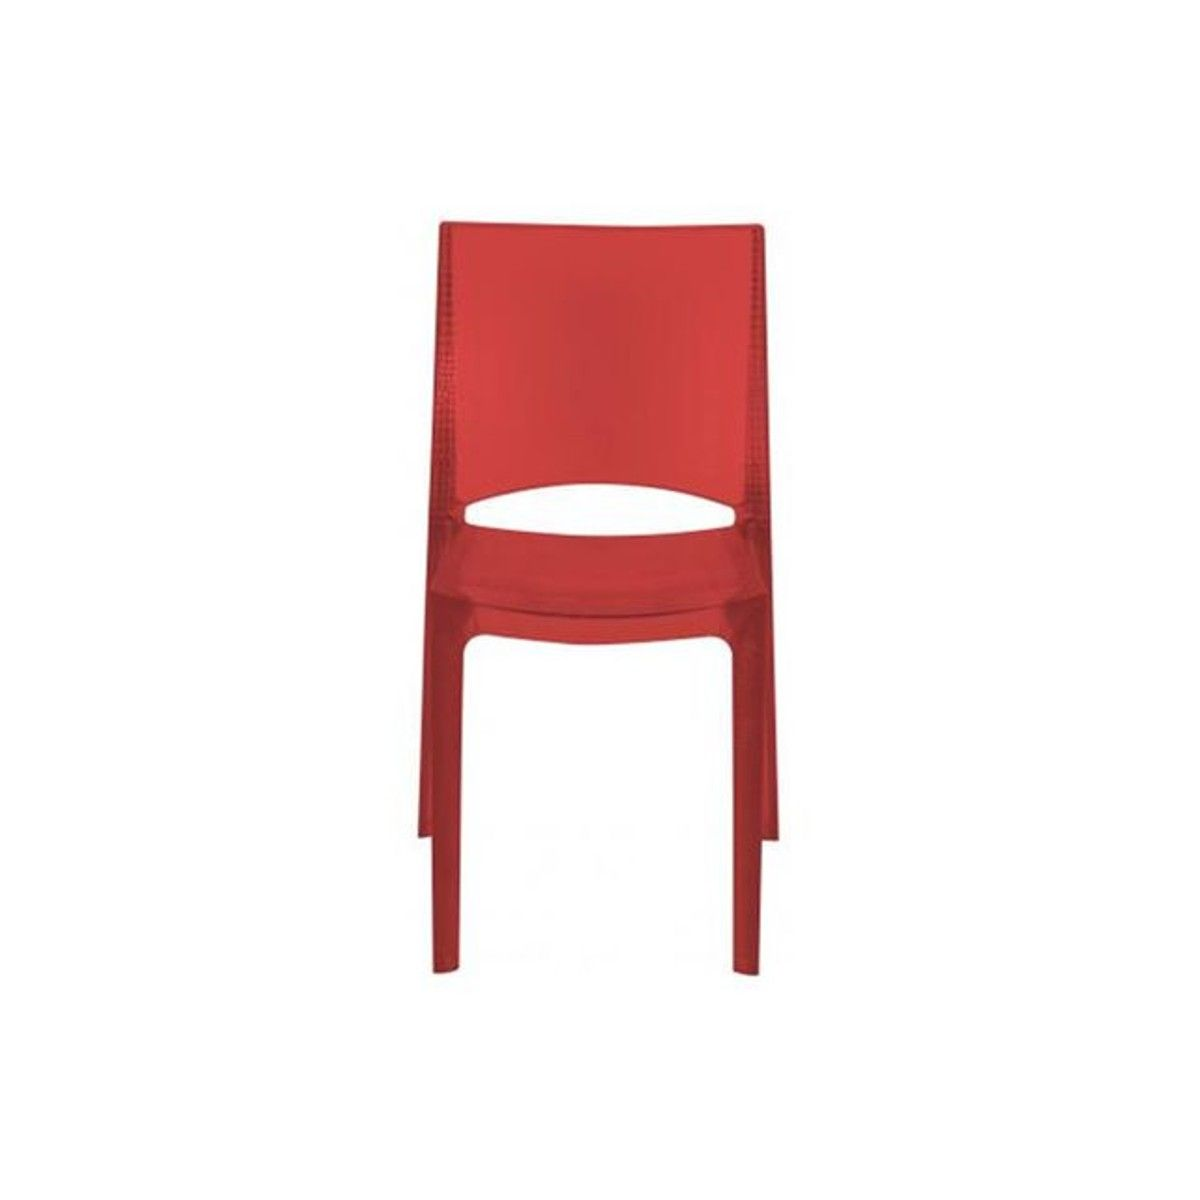 Chaise Design Effet Croco Rouge Fumee Sommet Taille Taille Unique Chaise Design Chaises Rouges Et Chaise